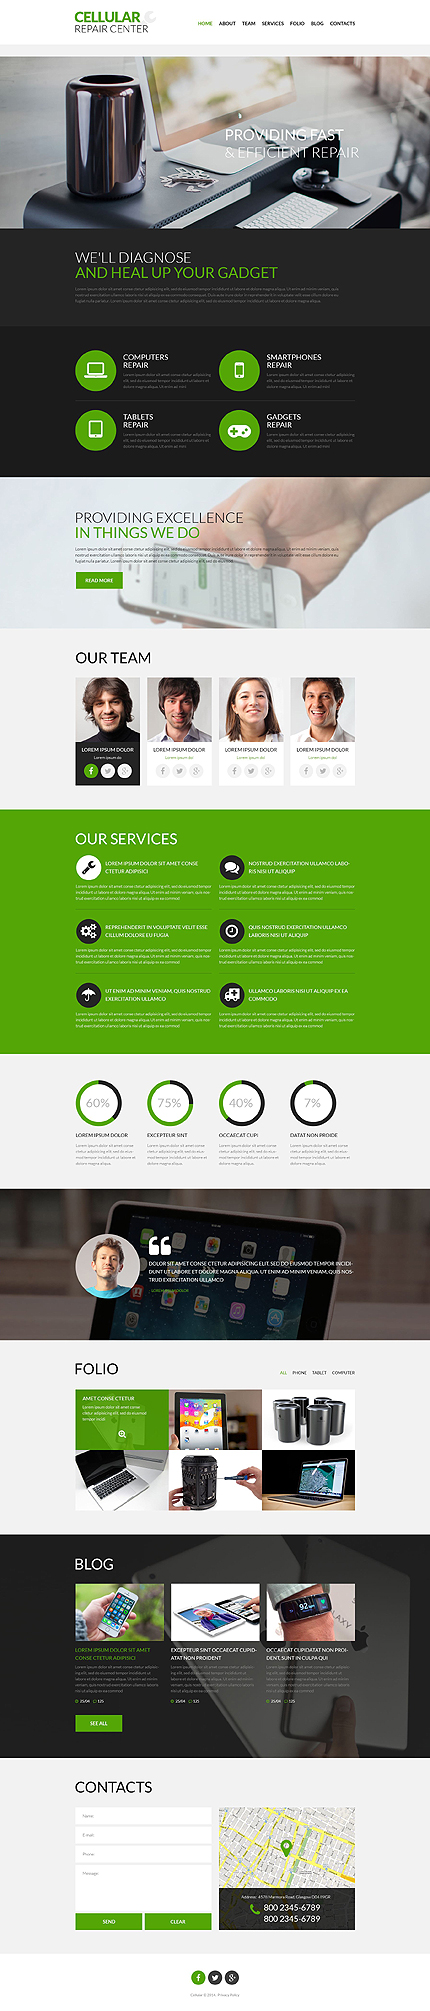 Cellular Repair Center WordPress Theme